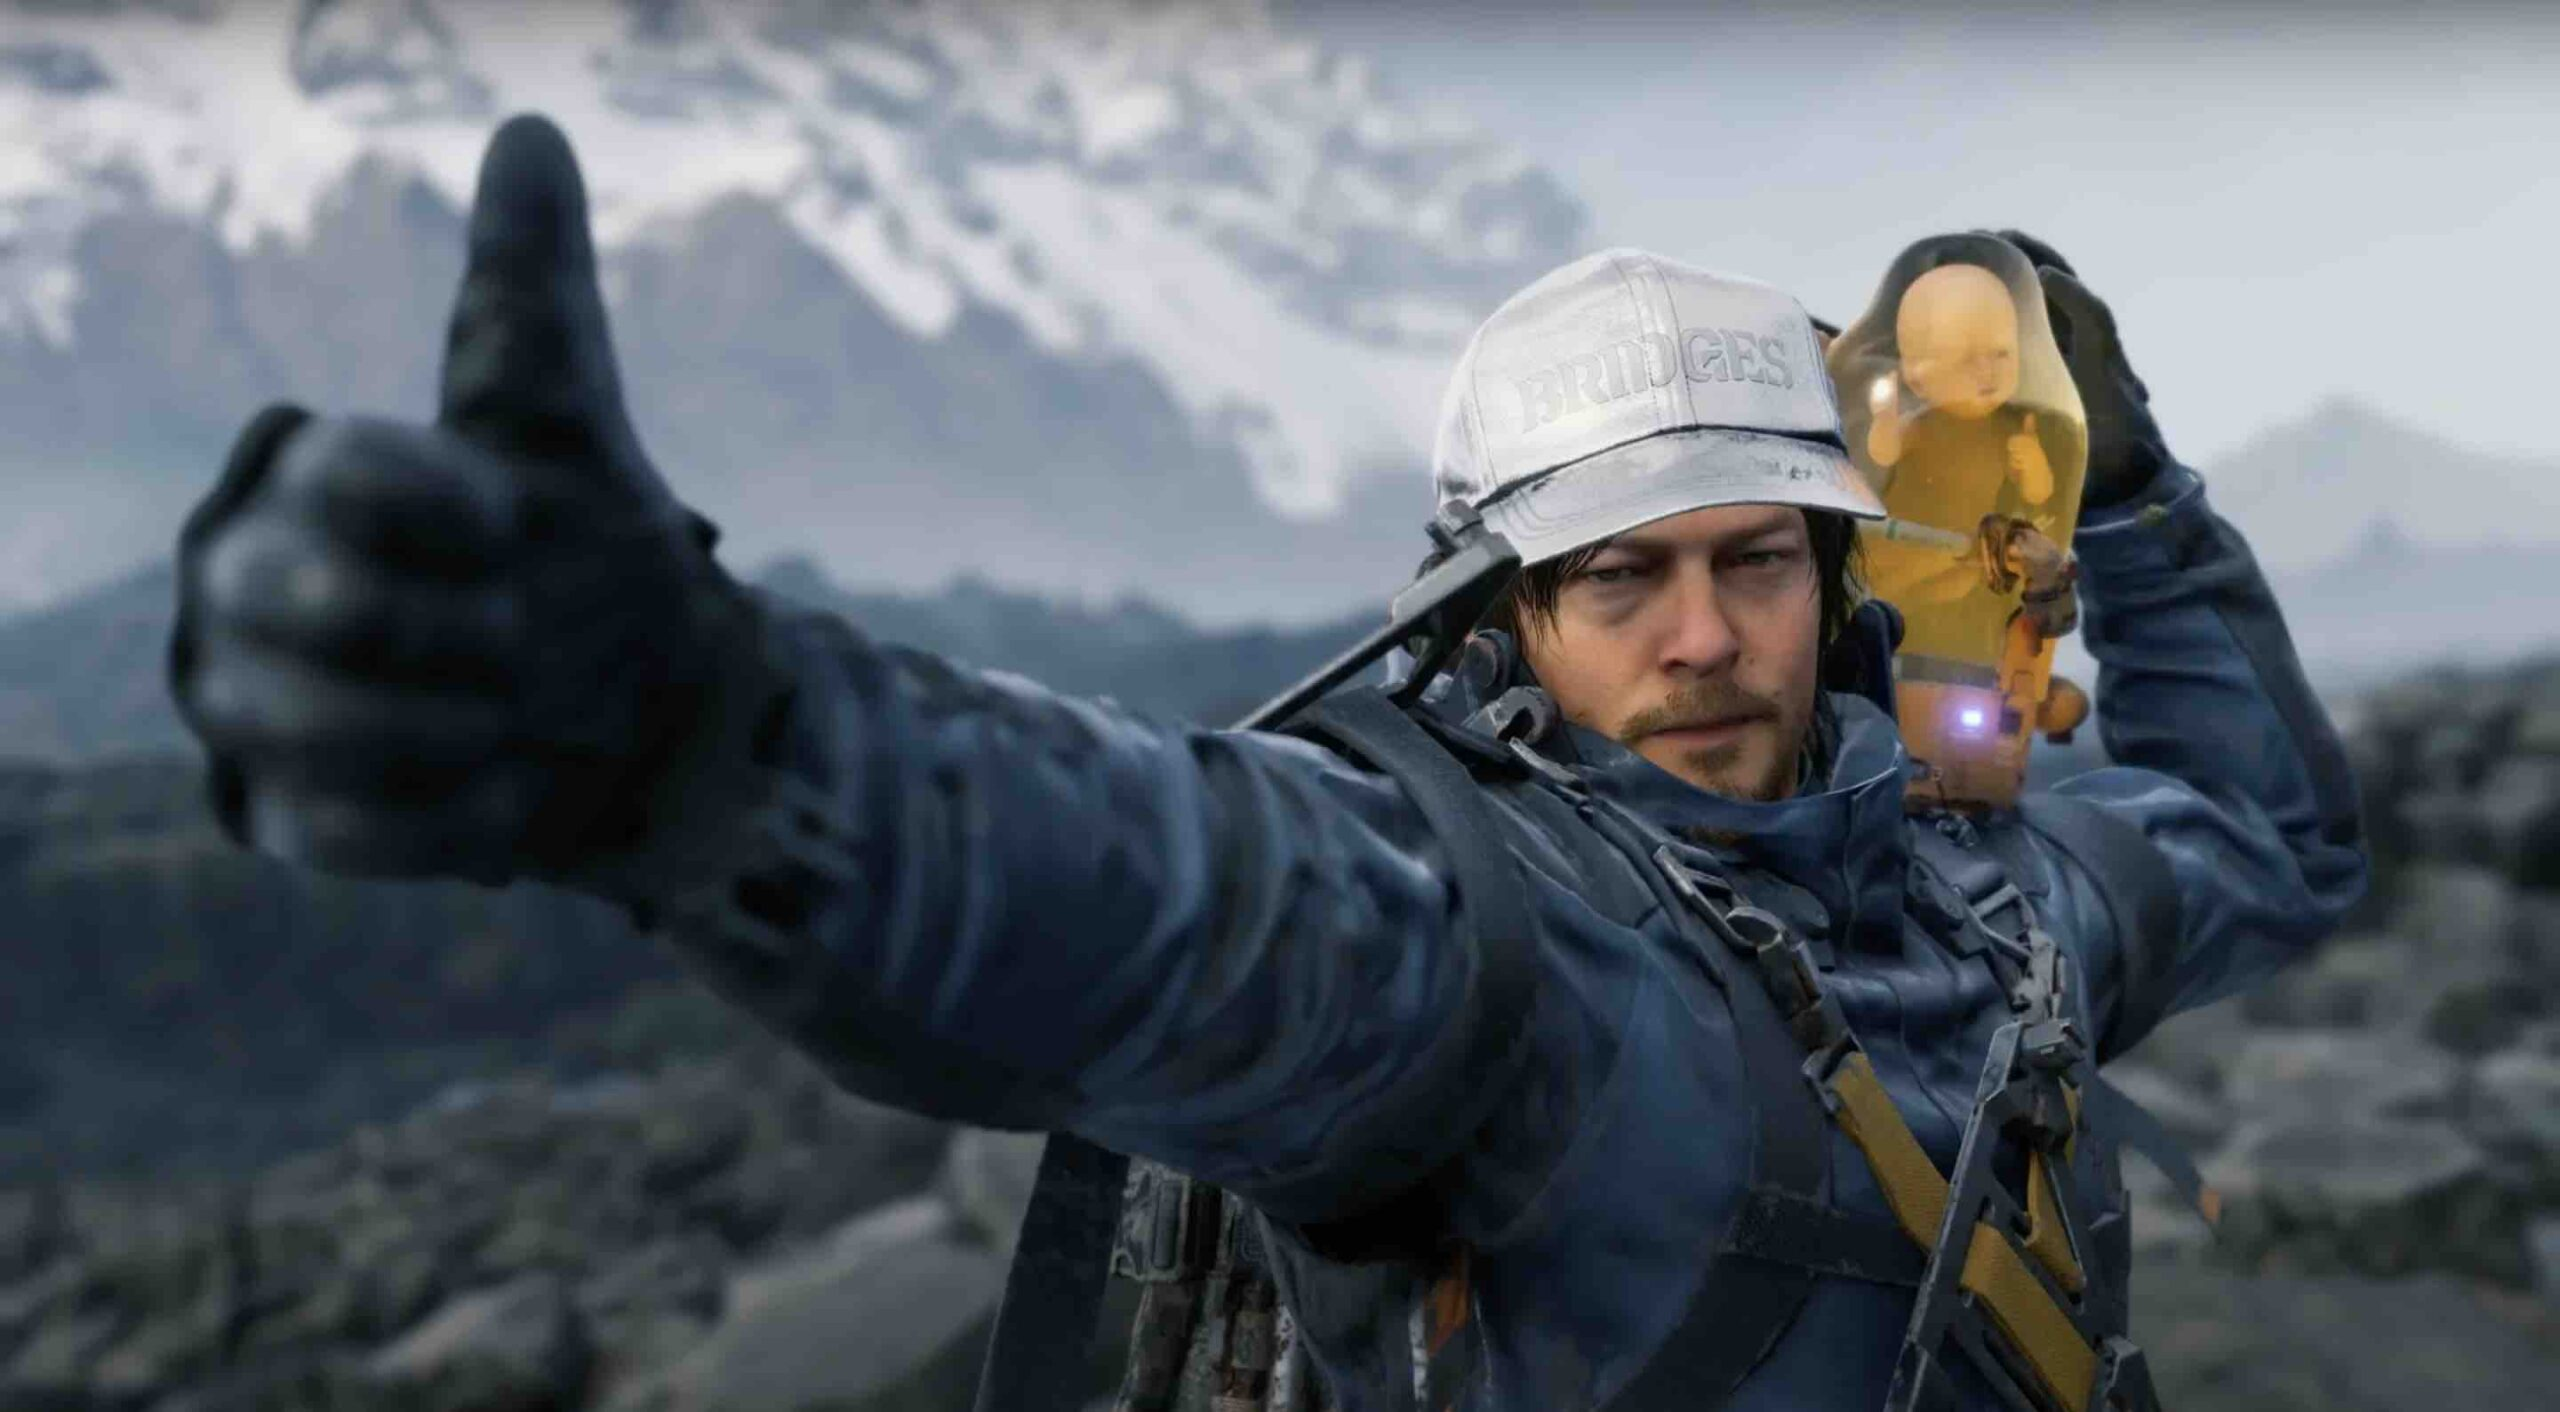 death stranding PS5 review